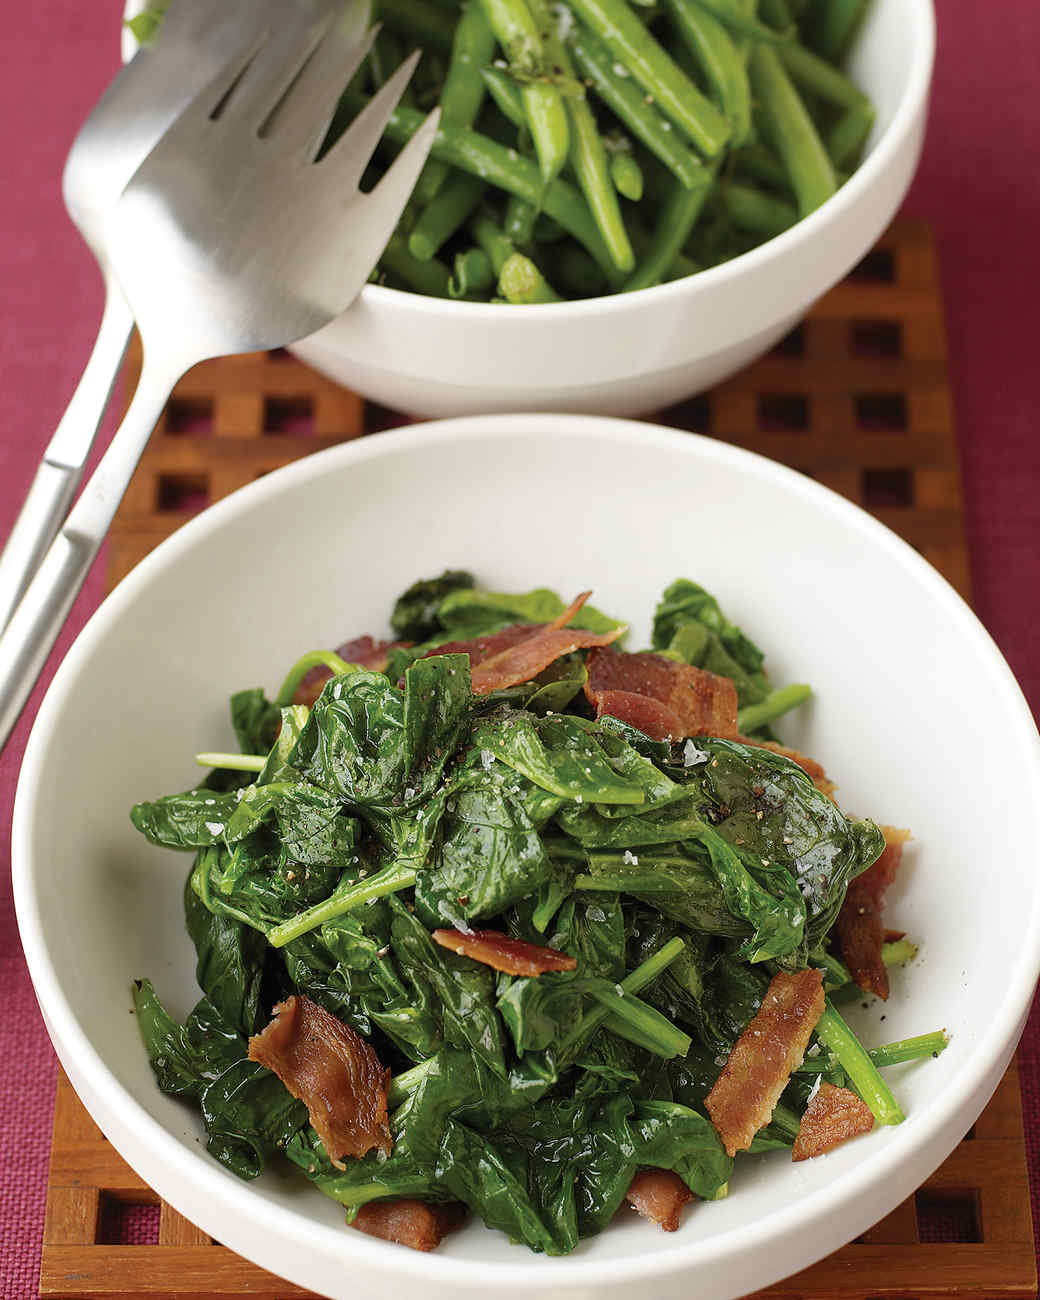 Sauteed Spinach with Bacon